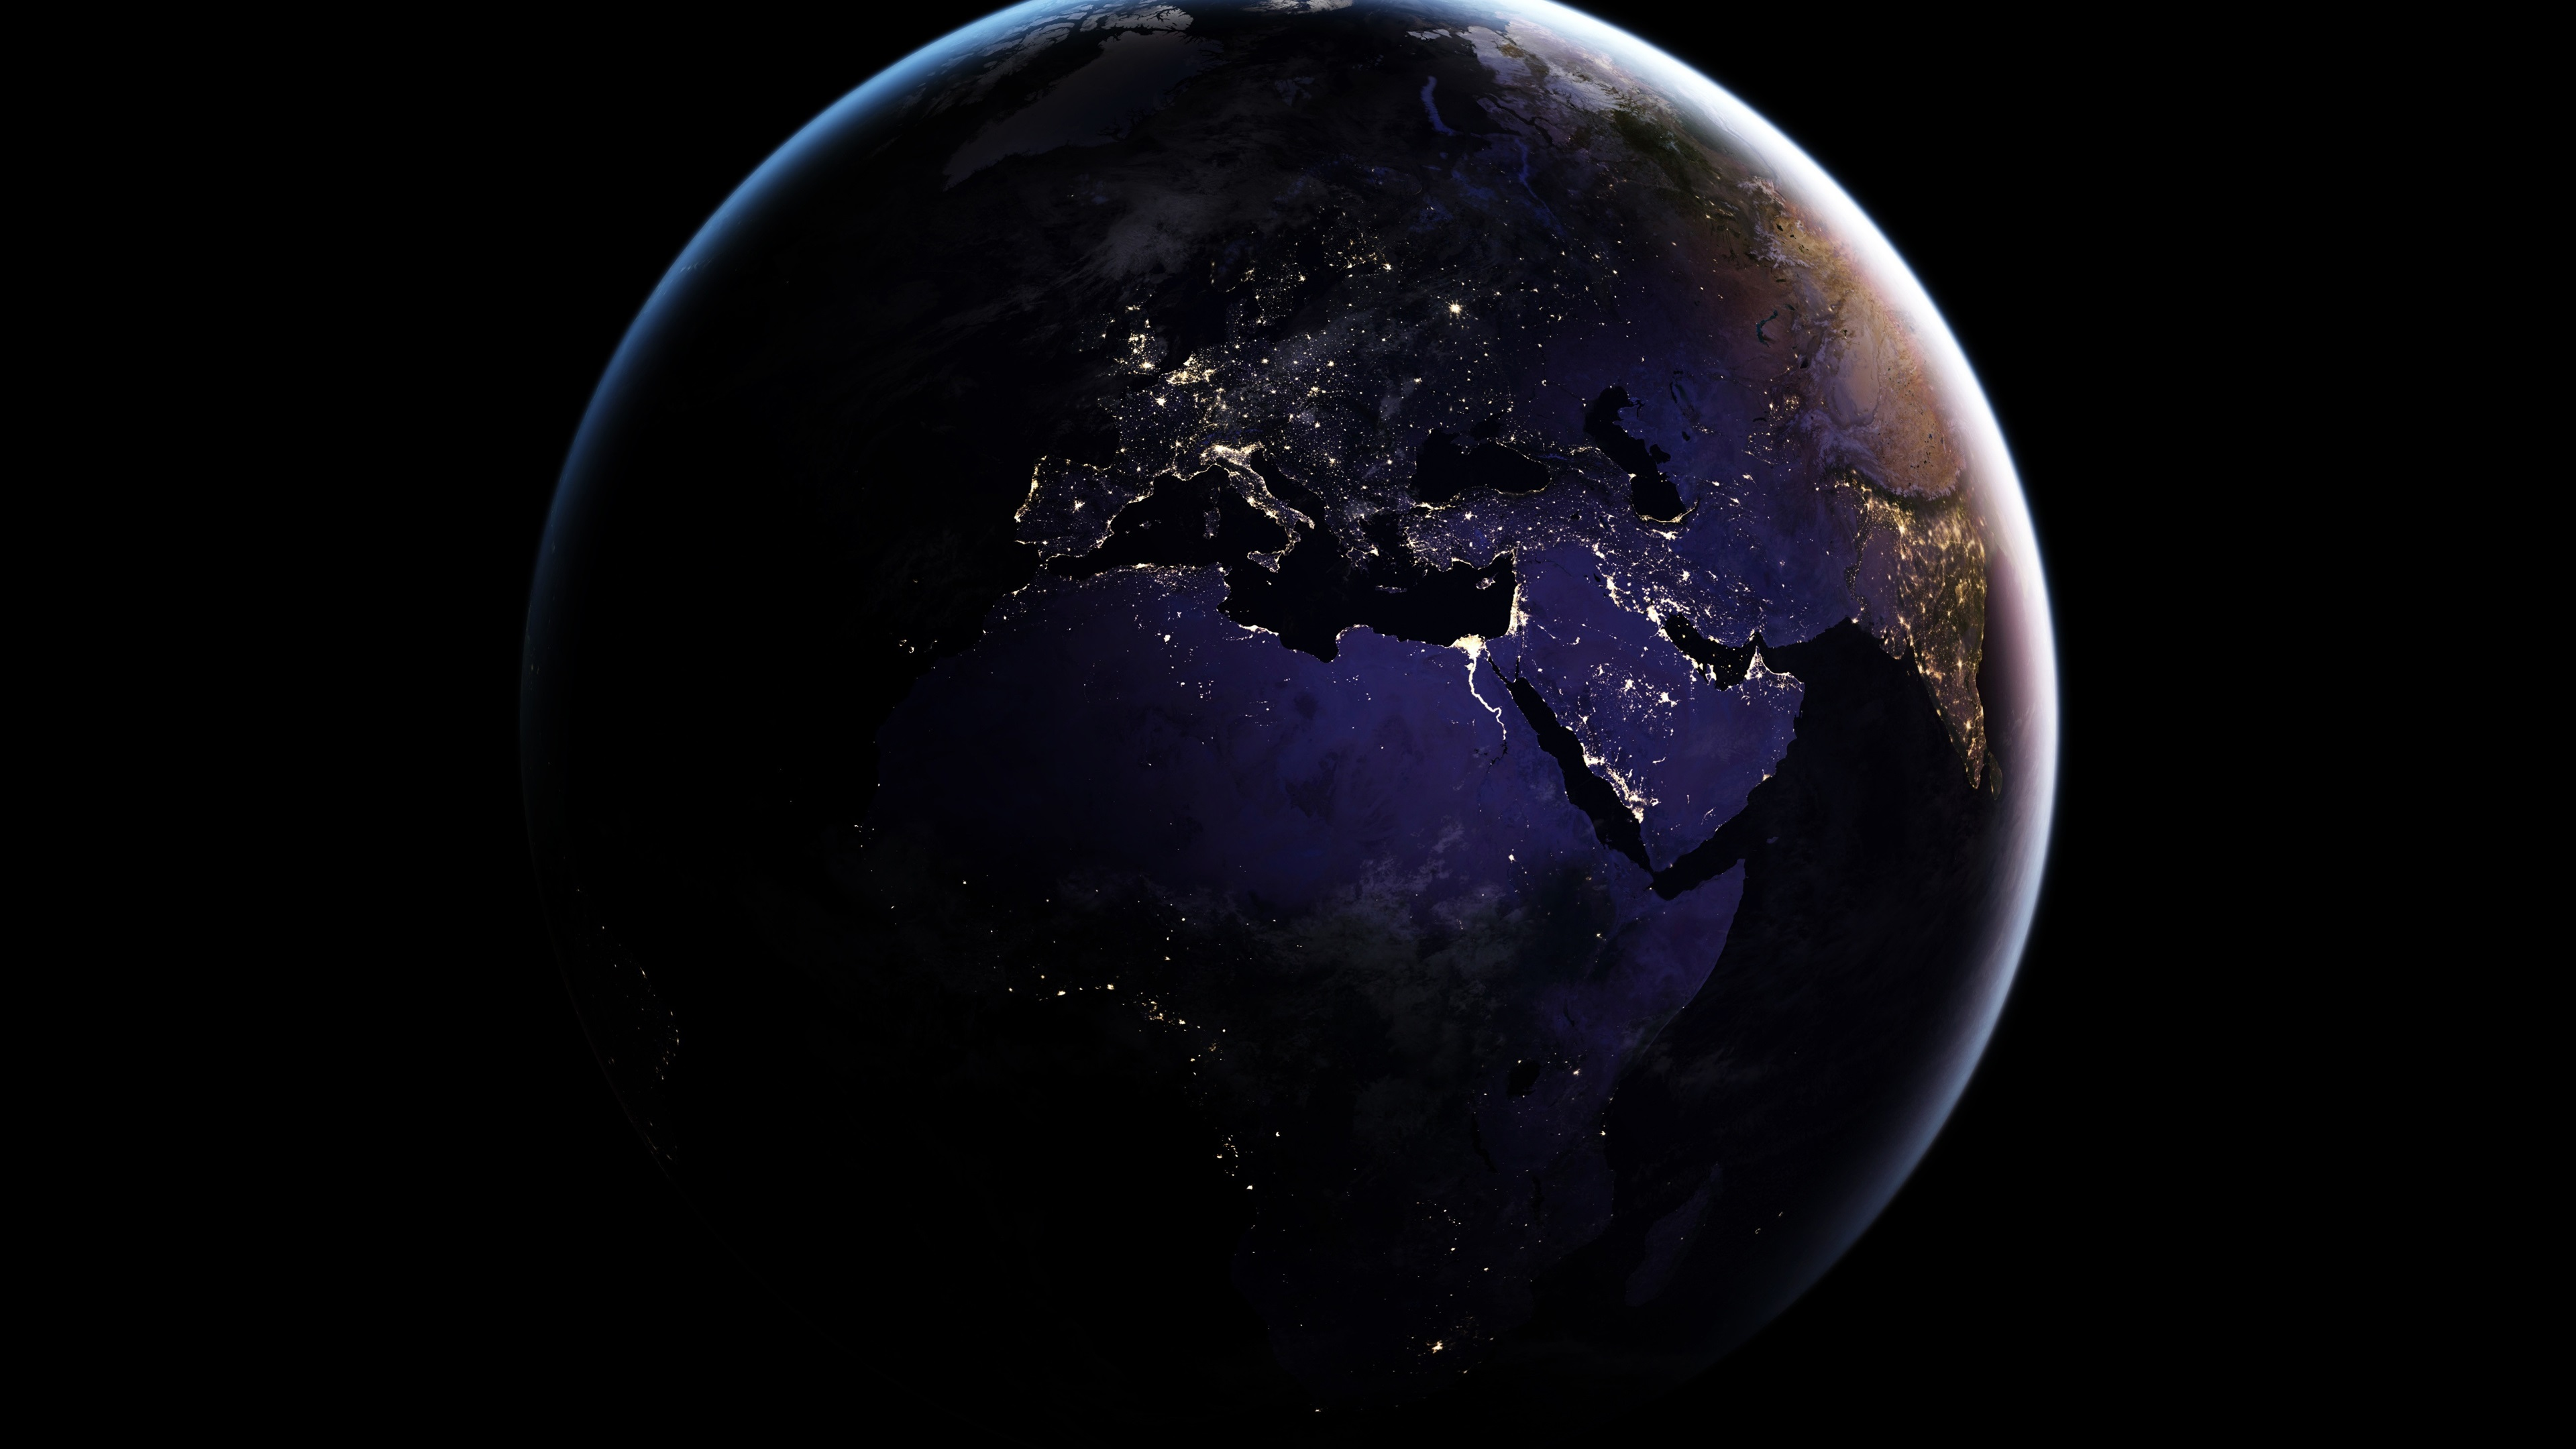 Wallpaper Earth Map Africa Space 3840x2160 Uhd 4k Picture Image